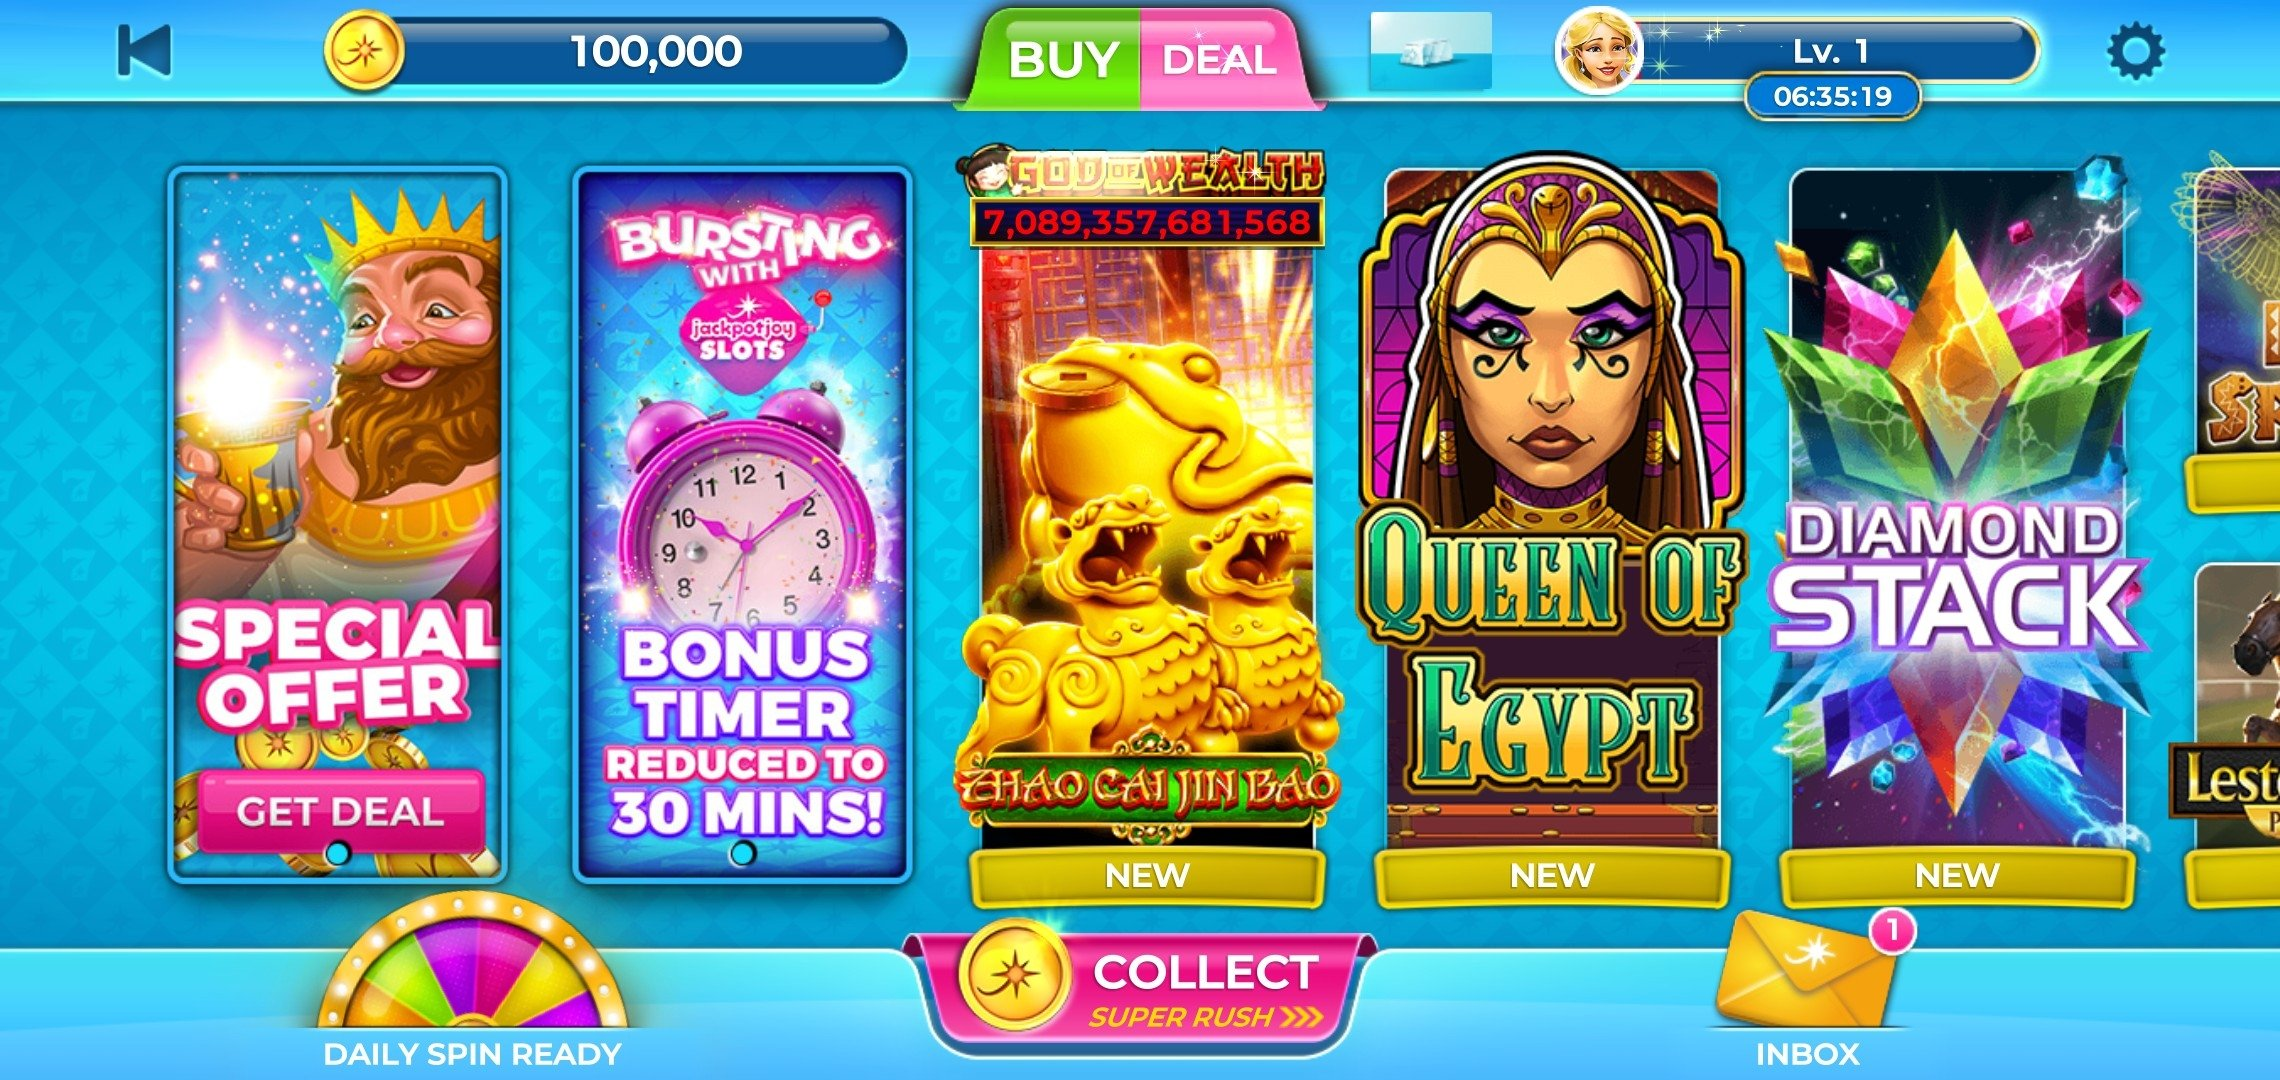 Jackpotjoy Slots 19.0.0000 - Download for Android APK Free